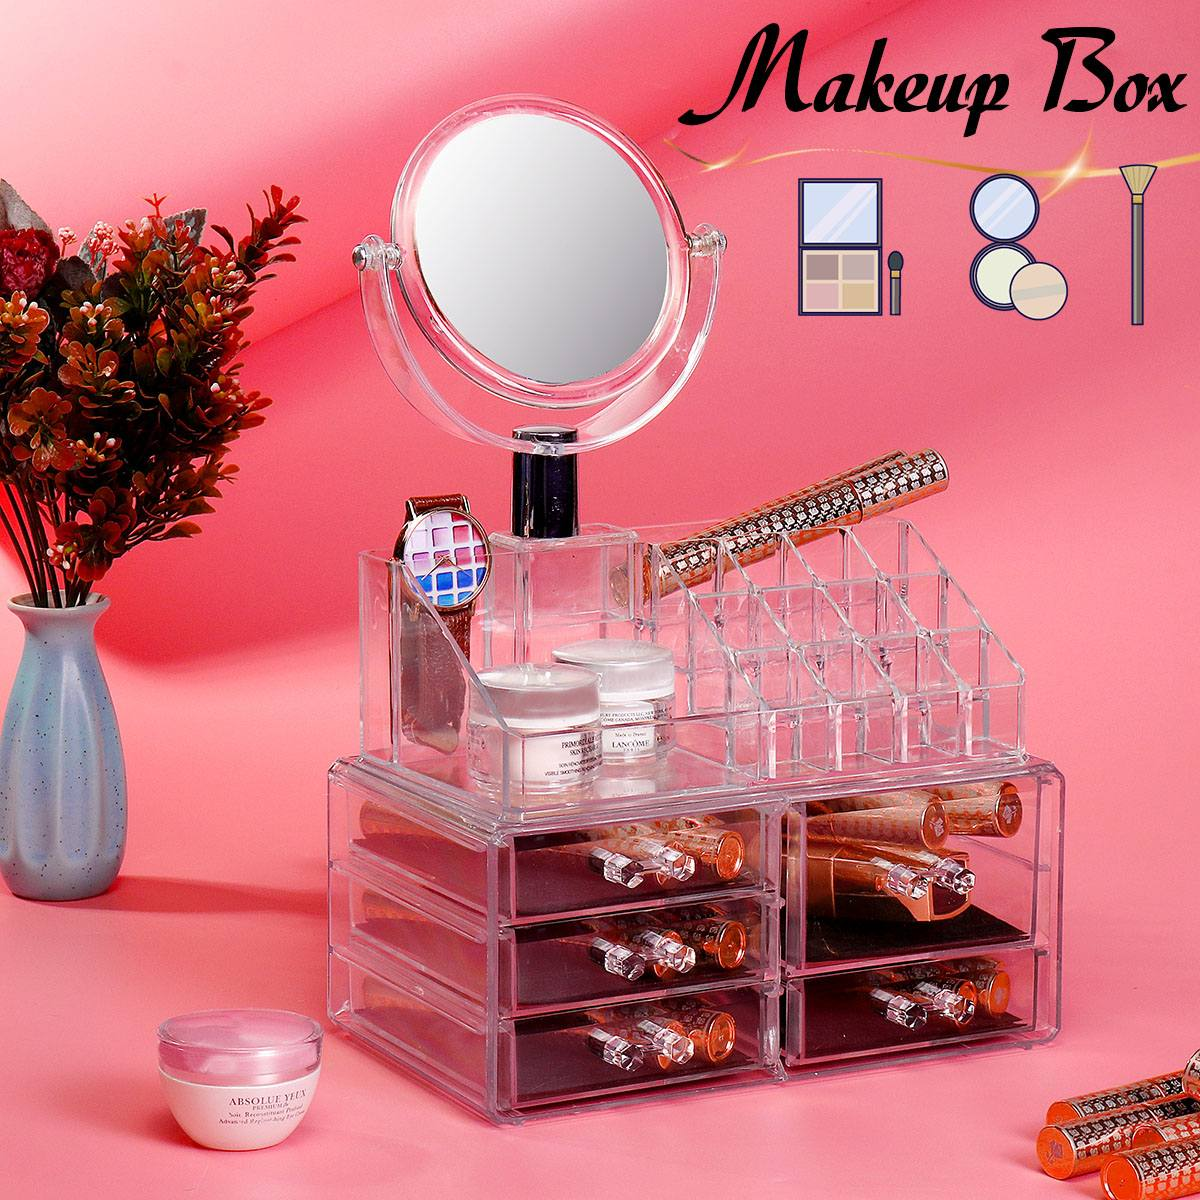 3Pcs Large Clear Cosmetic Organizer Box Makeup Storage Drawer Desk Bathroom Makeup Brush Lipstick Holder With Mirror PS Material